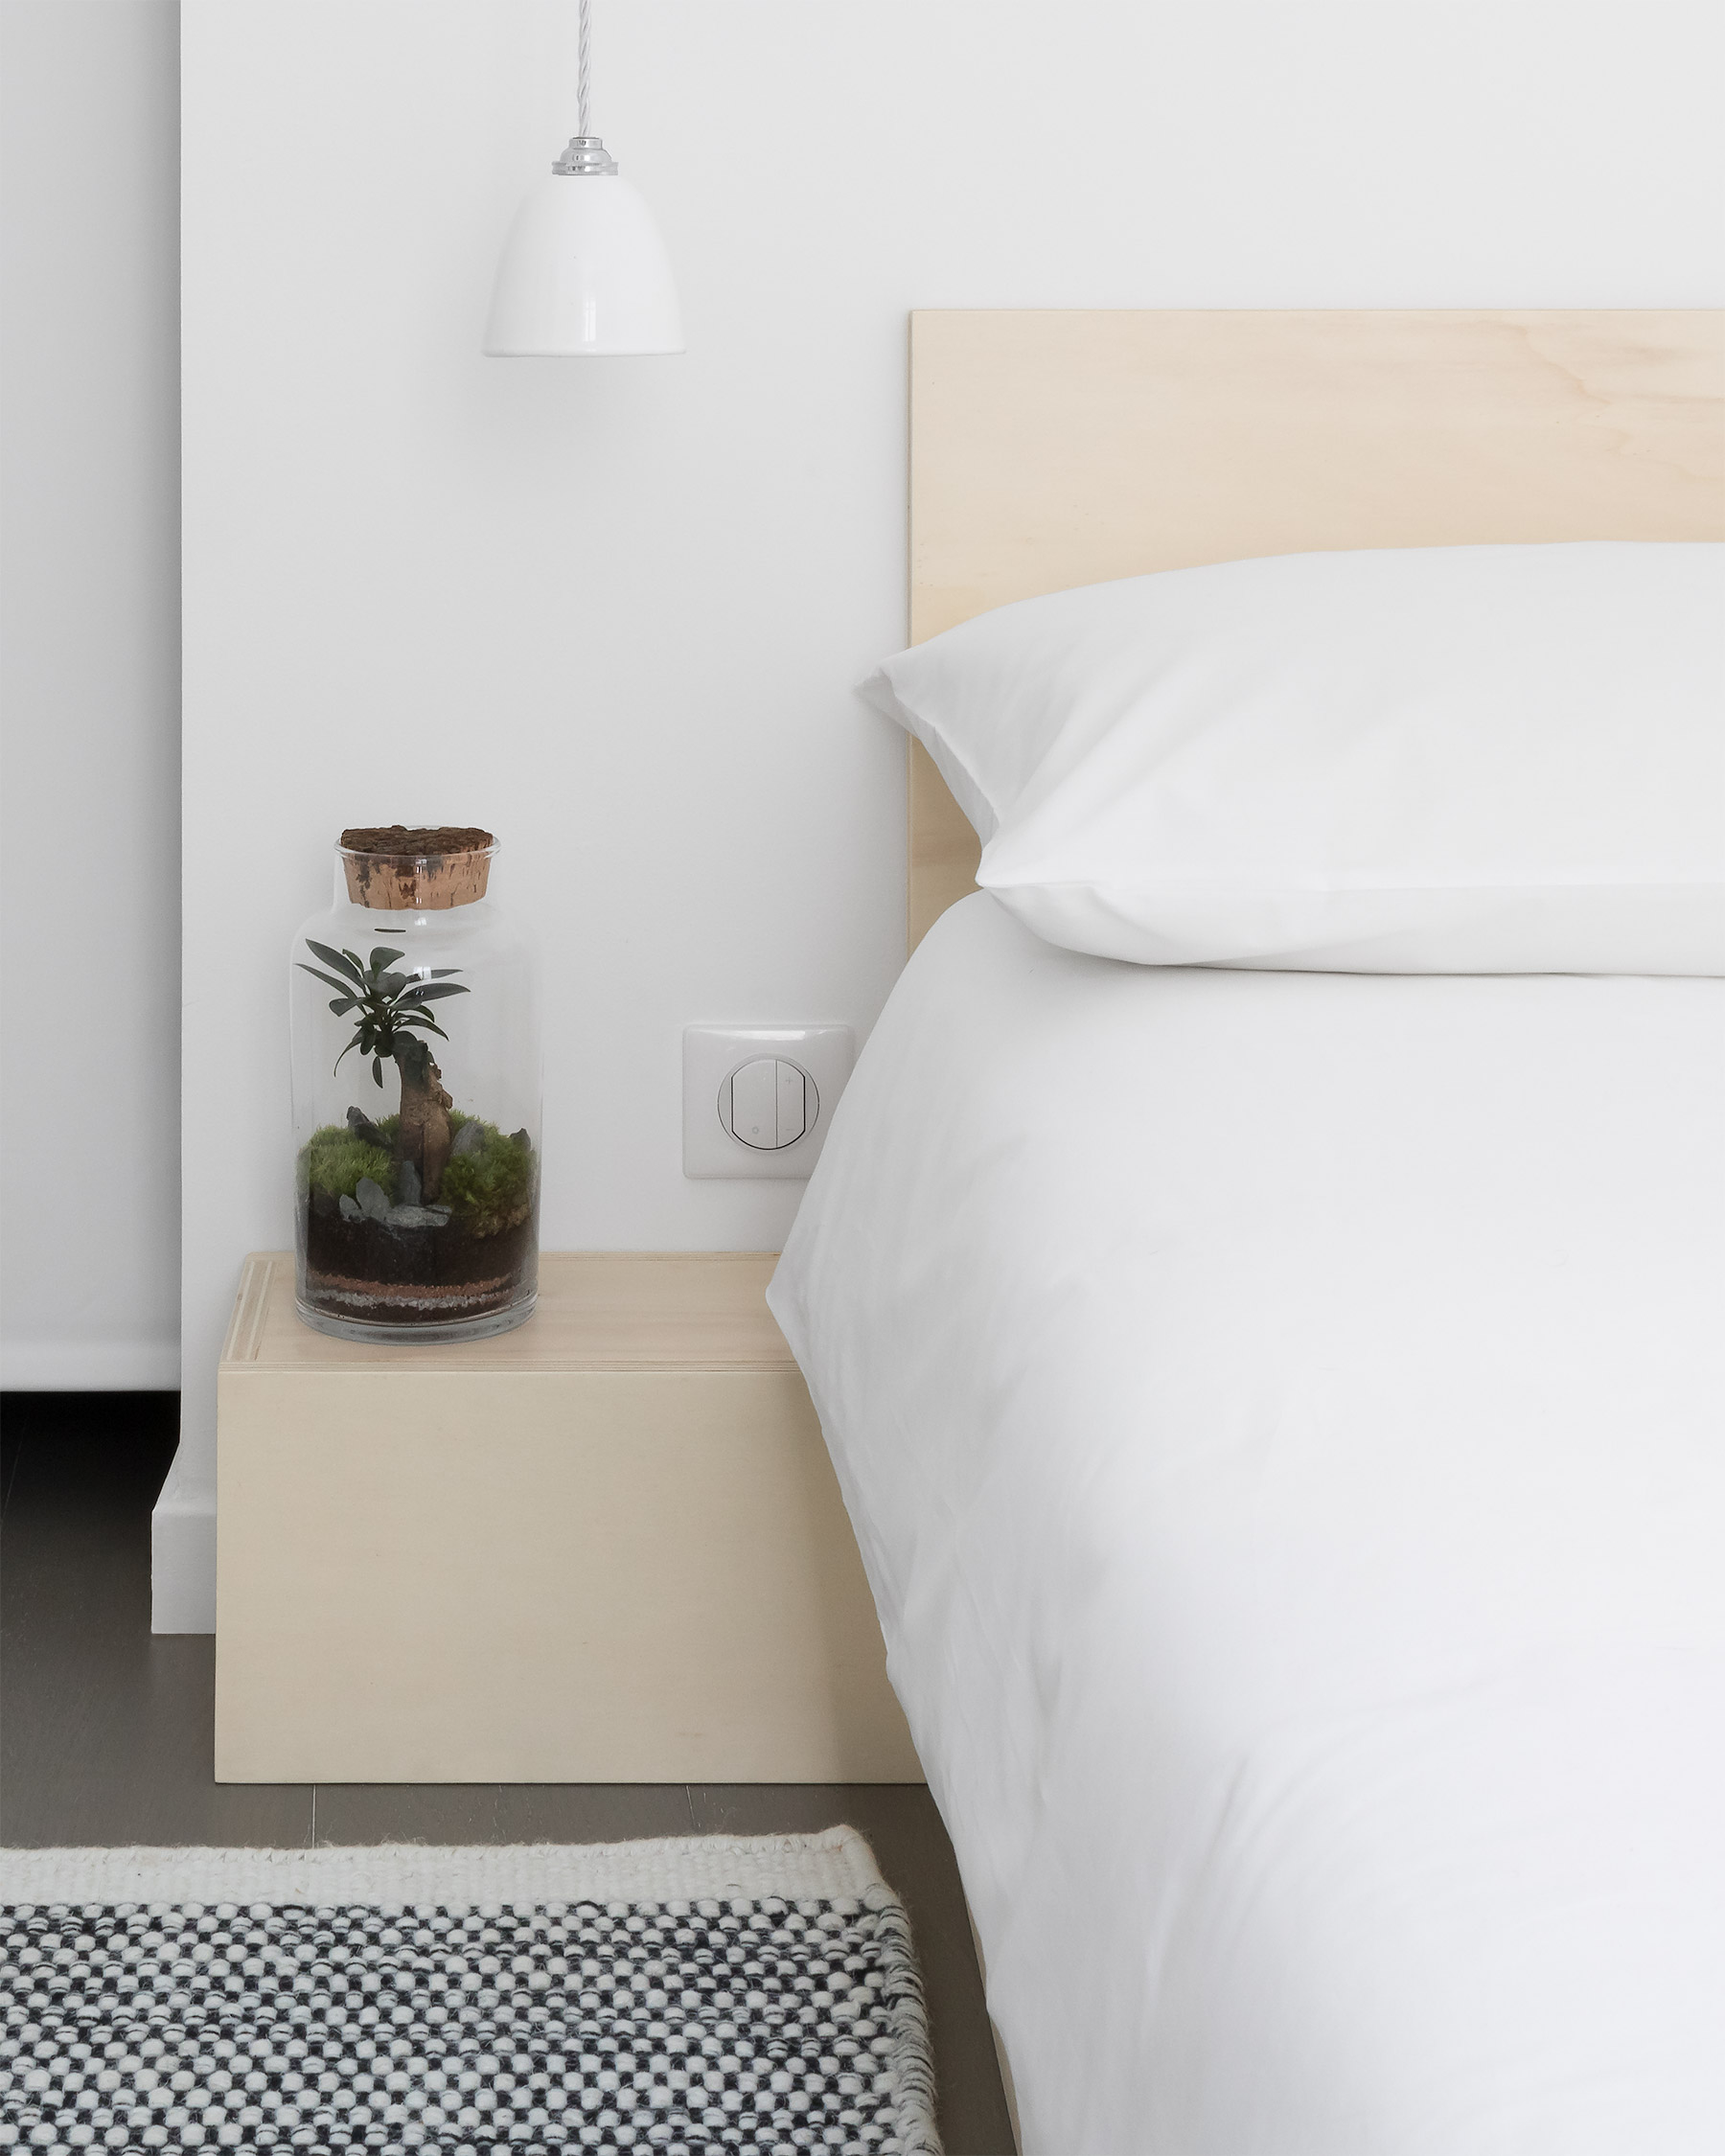 Minimal Japanese plywood bed with white linen, bedside table with terrarium and white glass pendant light